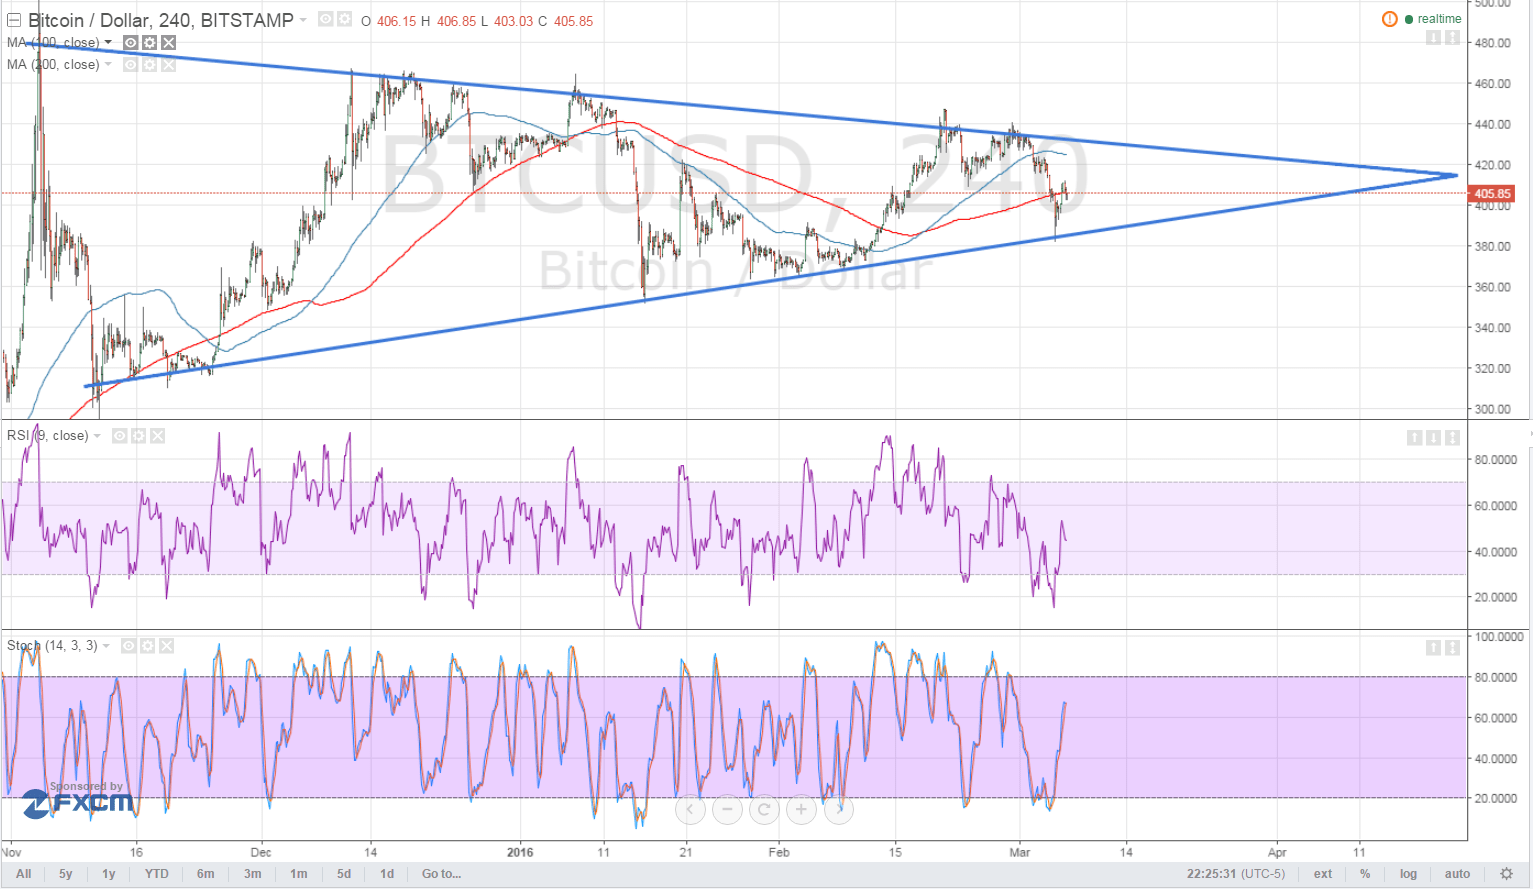 Bitcoin Price Technical Analysis for 03/07/2016 - Test of Triangle Support